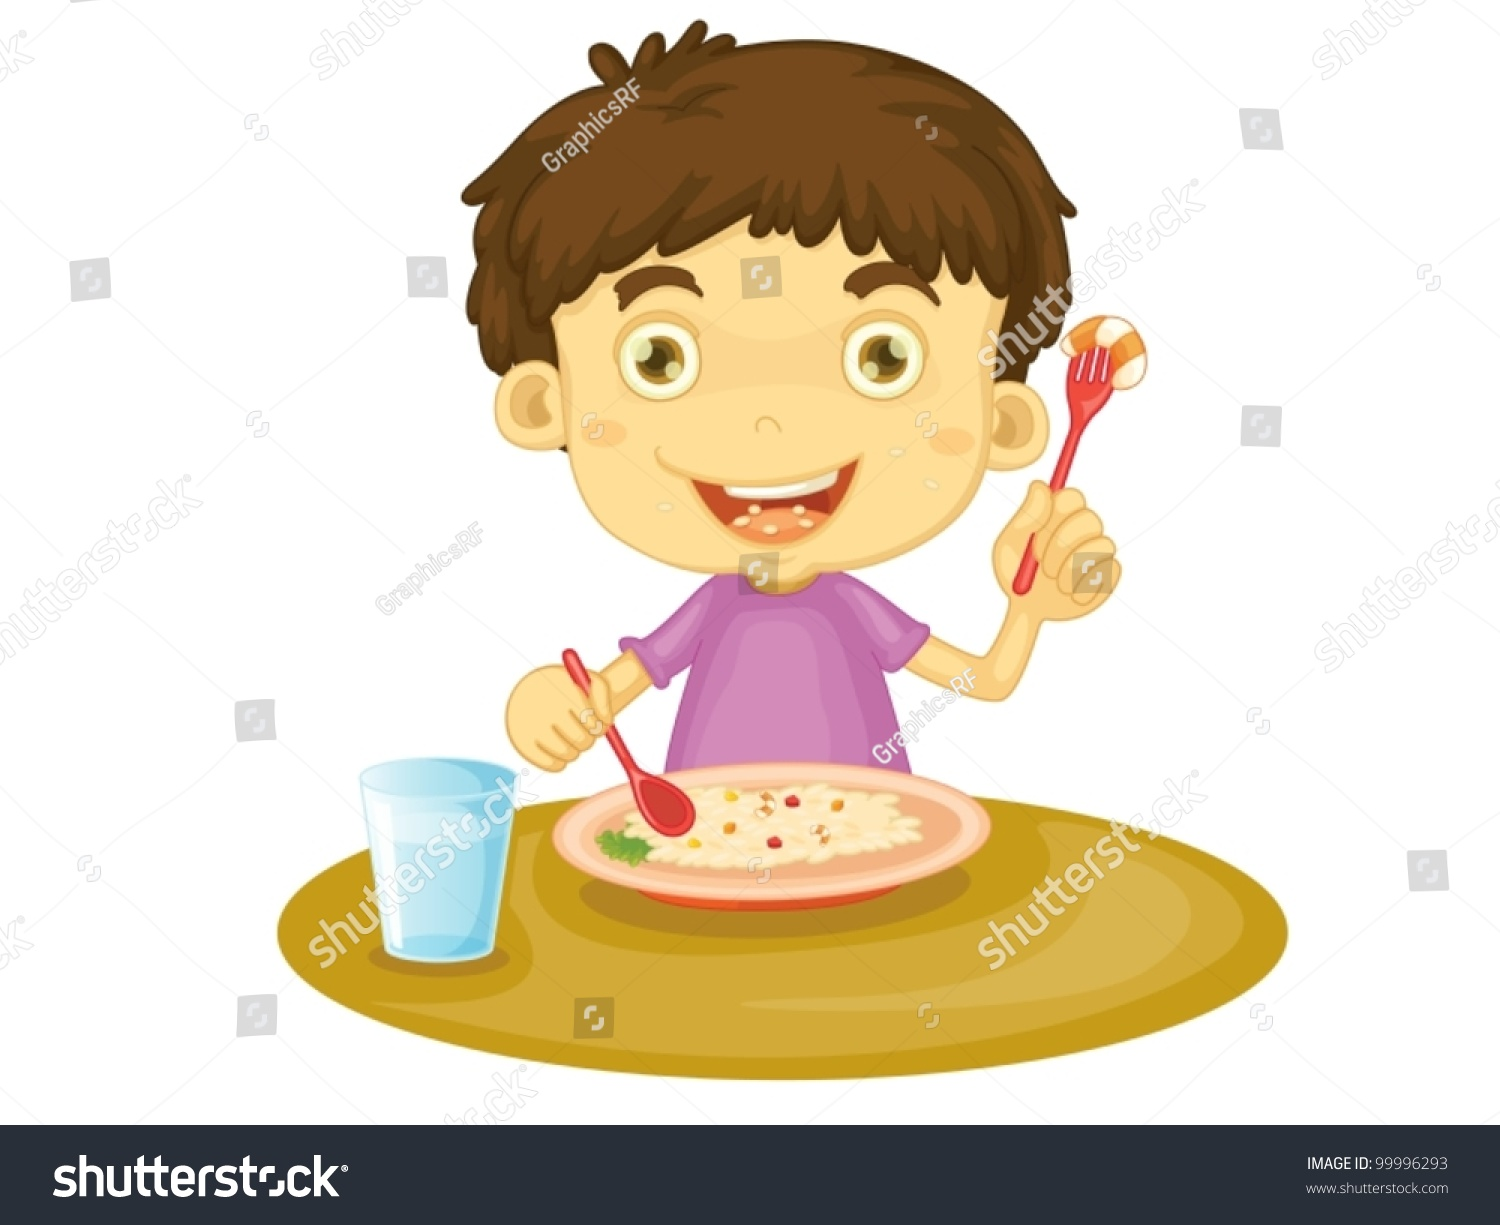 Lost Elephant On Wooden Ladder Surreal Photoshop Scene Via Pourmecoffee 2 besides 2015 06 Bass Body Muscles Food together with Stock Vector Illustration Of Child Eating At A Table as well Sweets Lover Mouth Stuffed Chocolates 985483 additionally V ier Mond 12740616. on mouth eating clip art